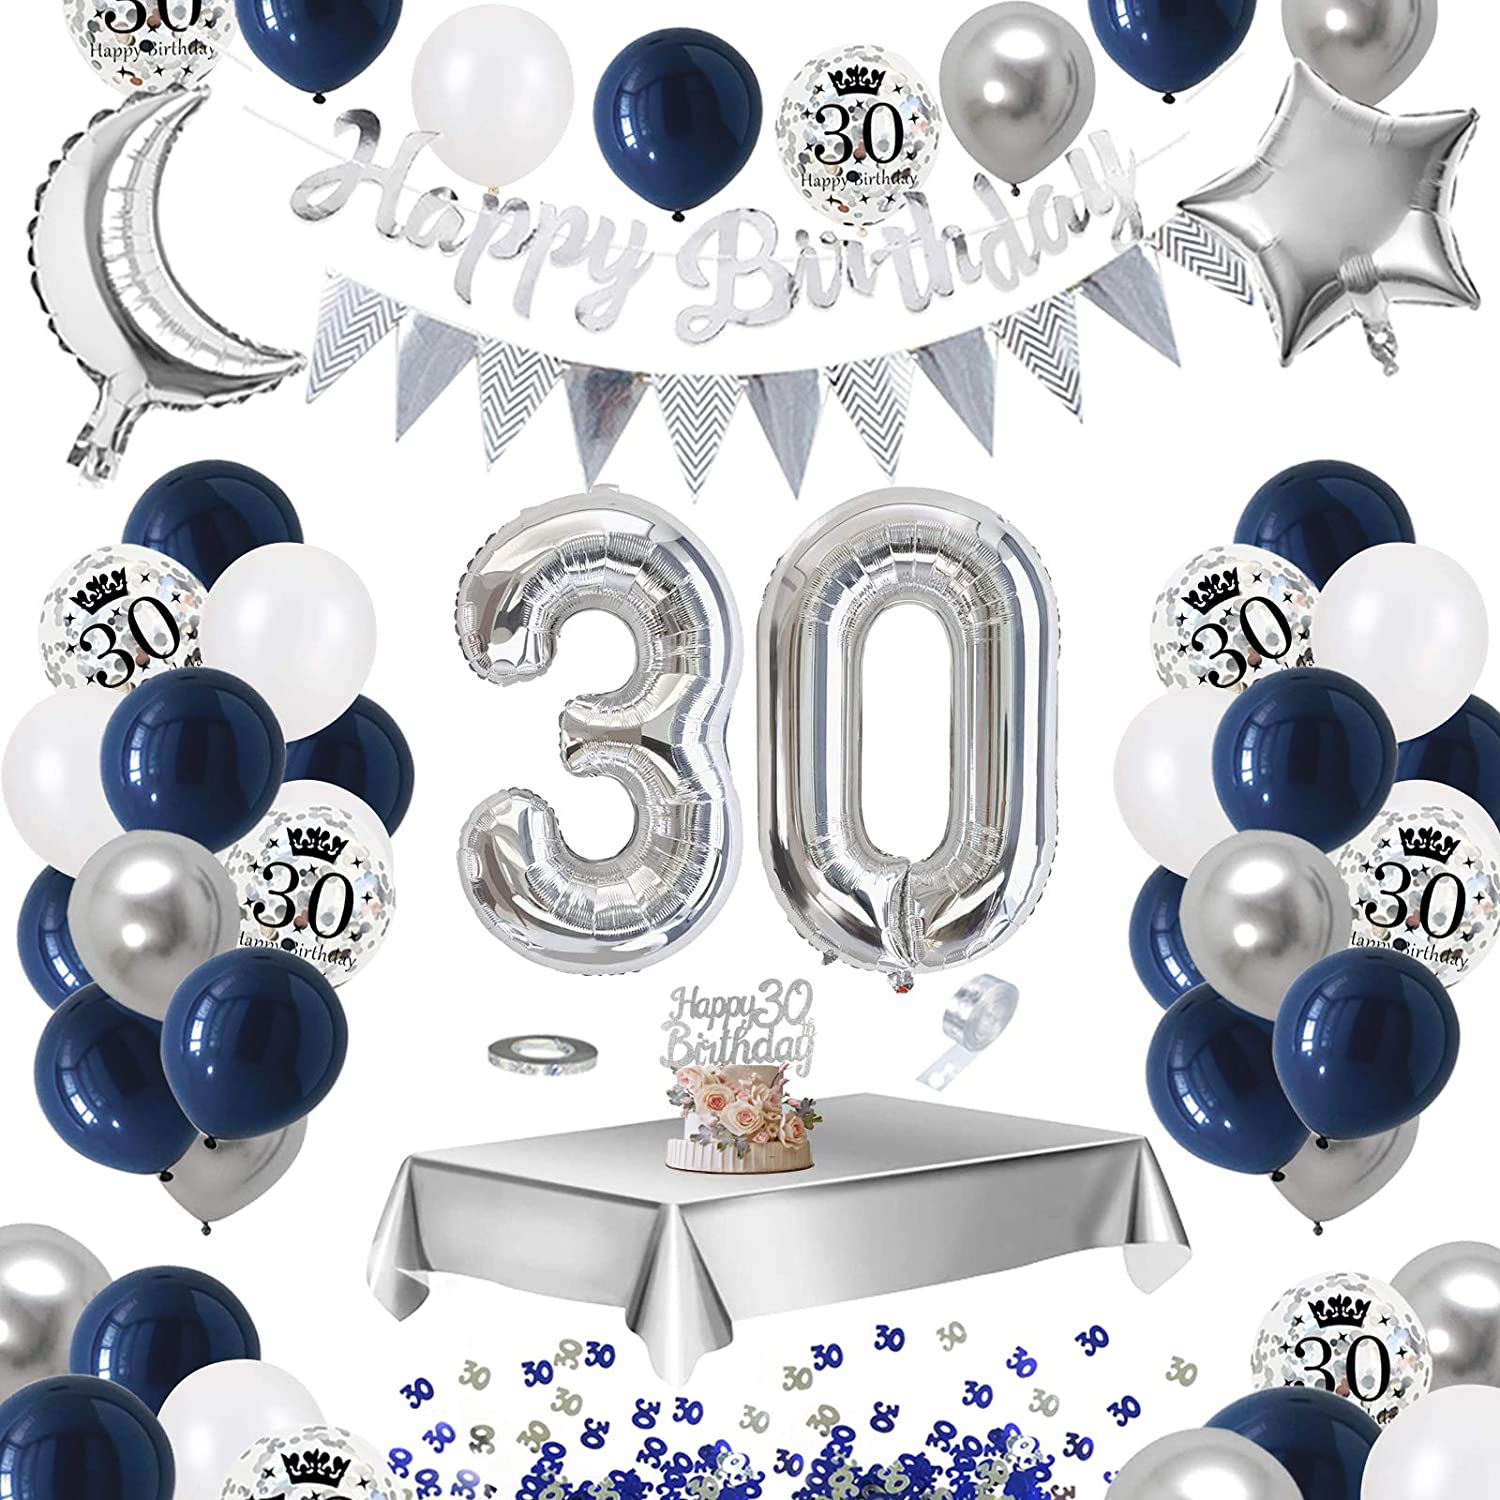 Aperil 30th Birthday Decorations For Men Navy Blue White Balloons Printed Silver Confetti Balloons Metallic Silver Balloons Foil Tablecloth 30 Table Confetti Happy Birthday Banner Cake Topper Amazon Co Uk Kitchen Home